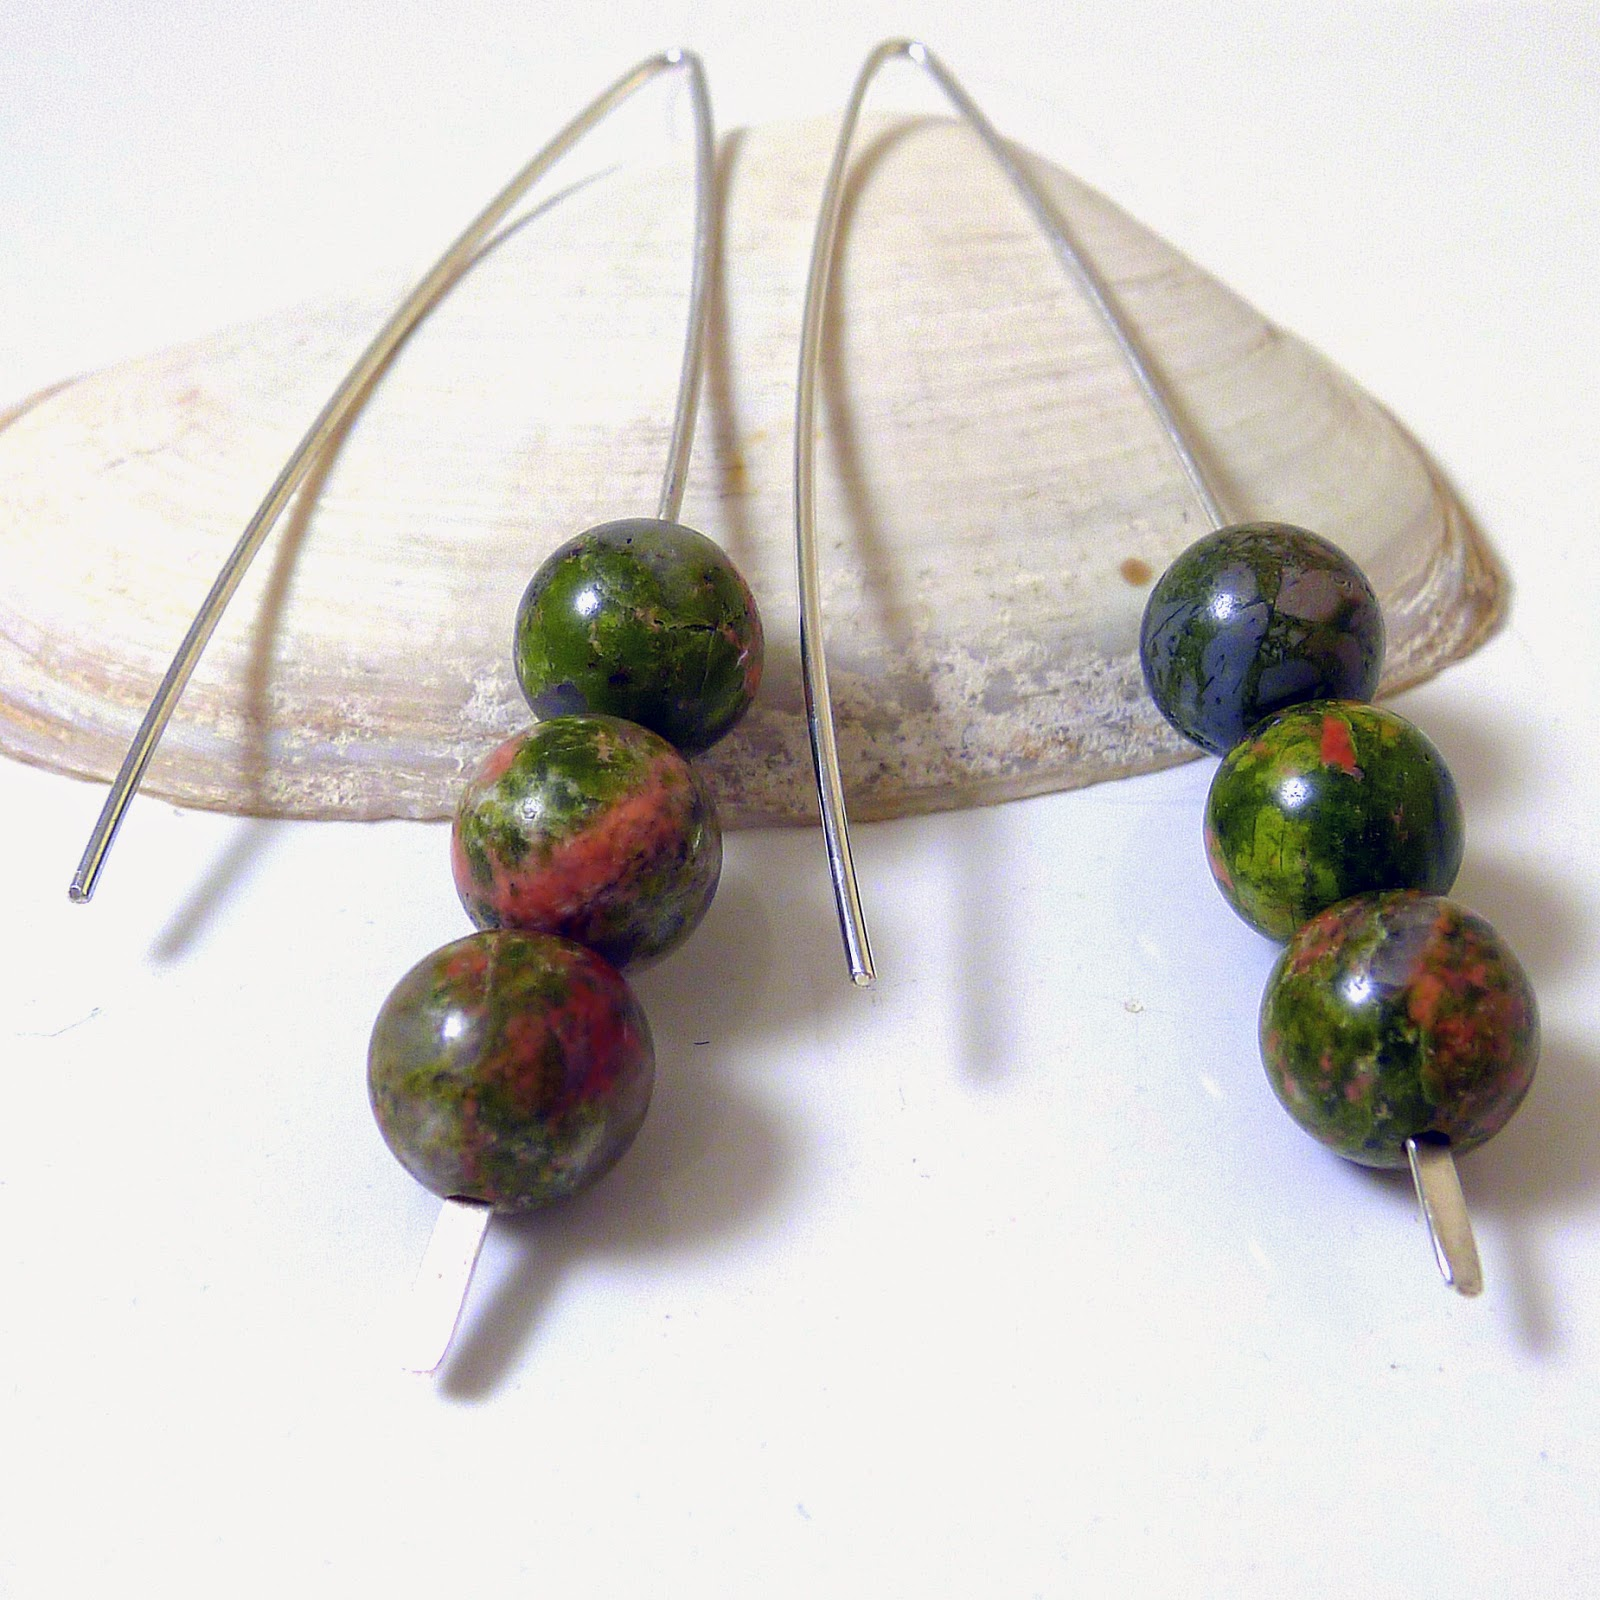 http://www.shazzabethcreations.co.nz/#!product/prd1/2485497961/unakite-v-style-earrings